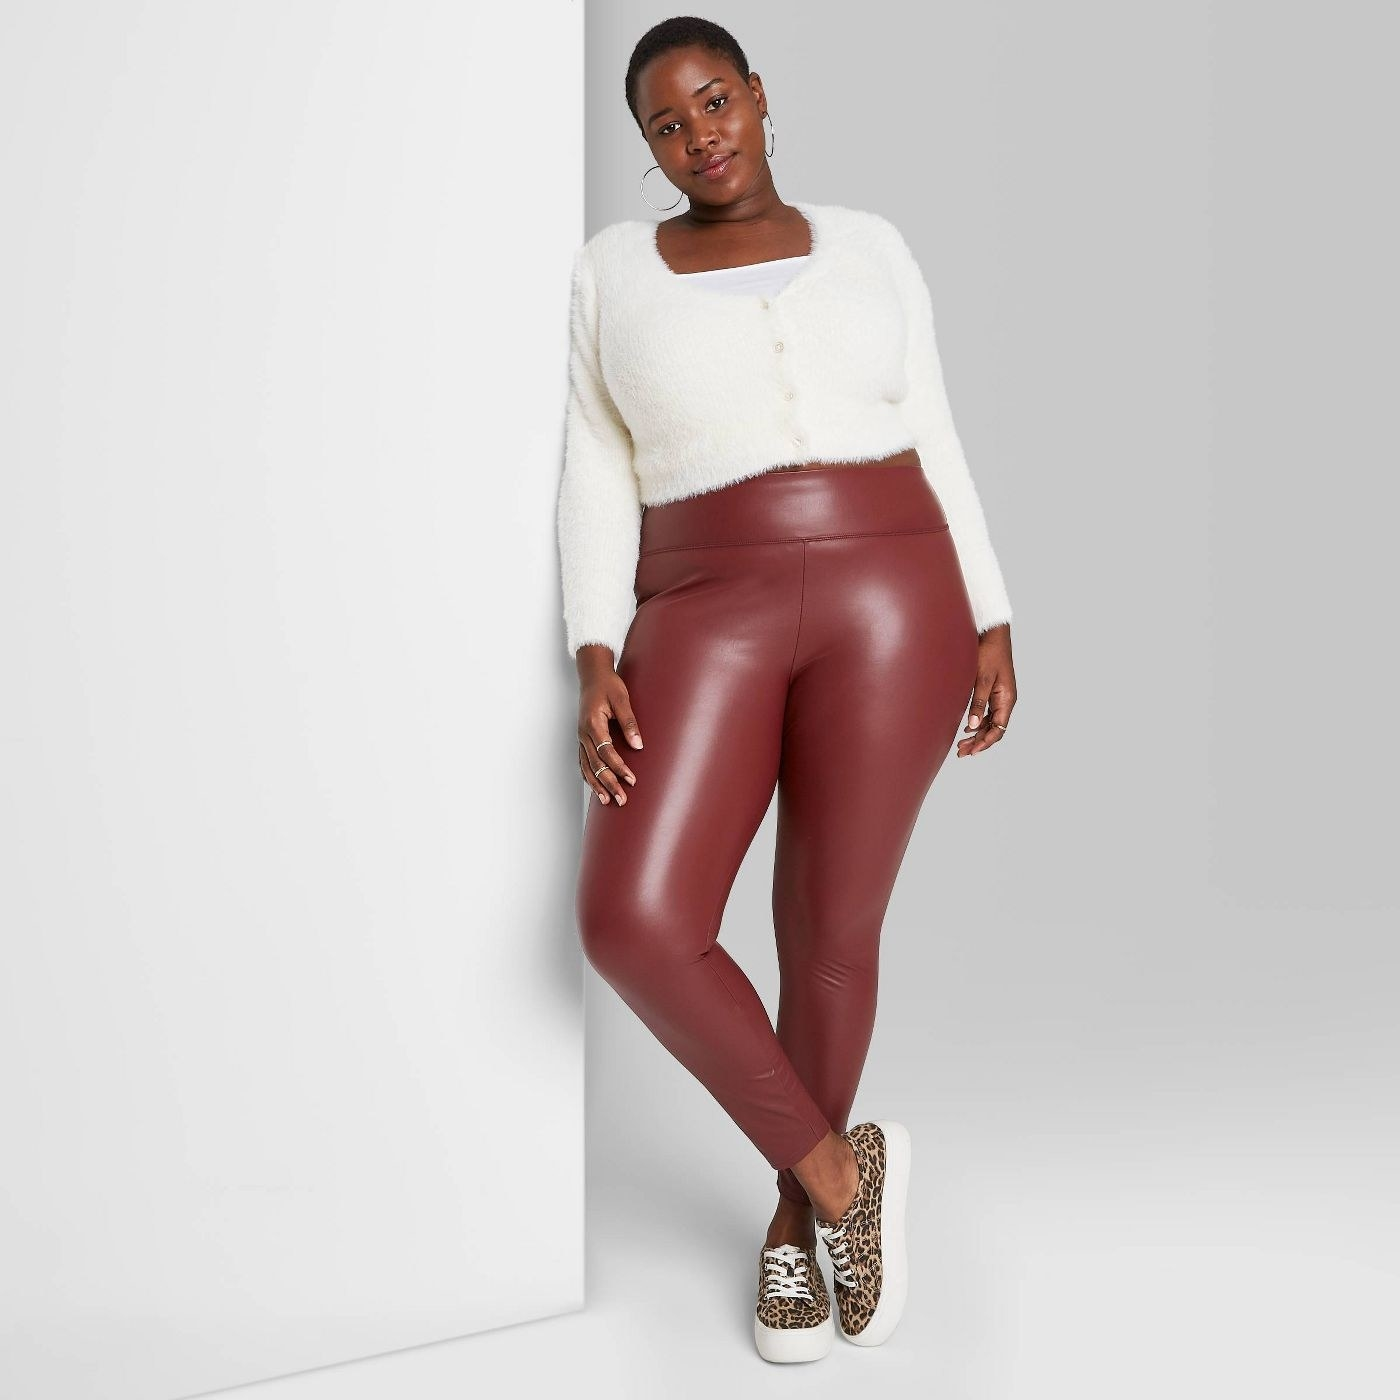 Model in high-waisted faux leather leggings